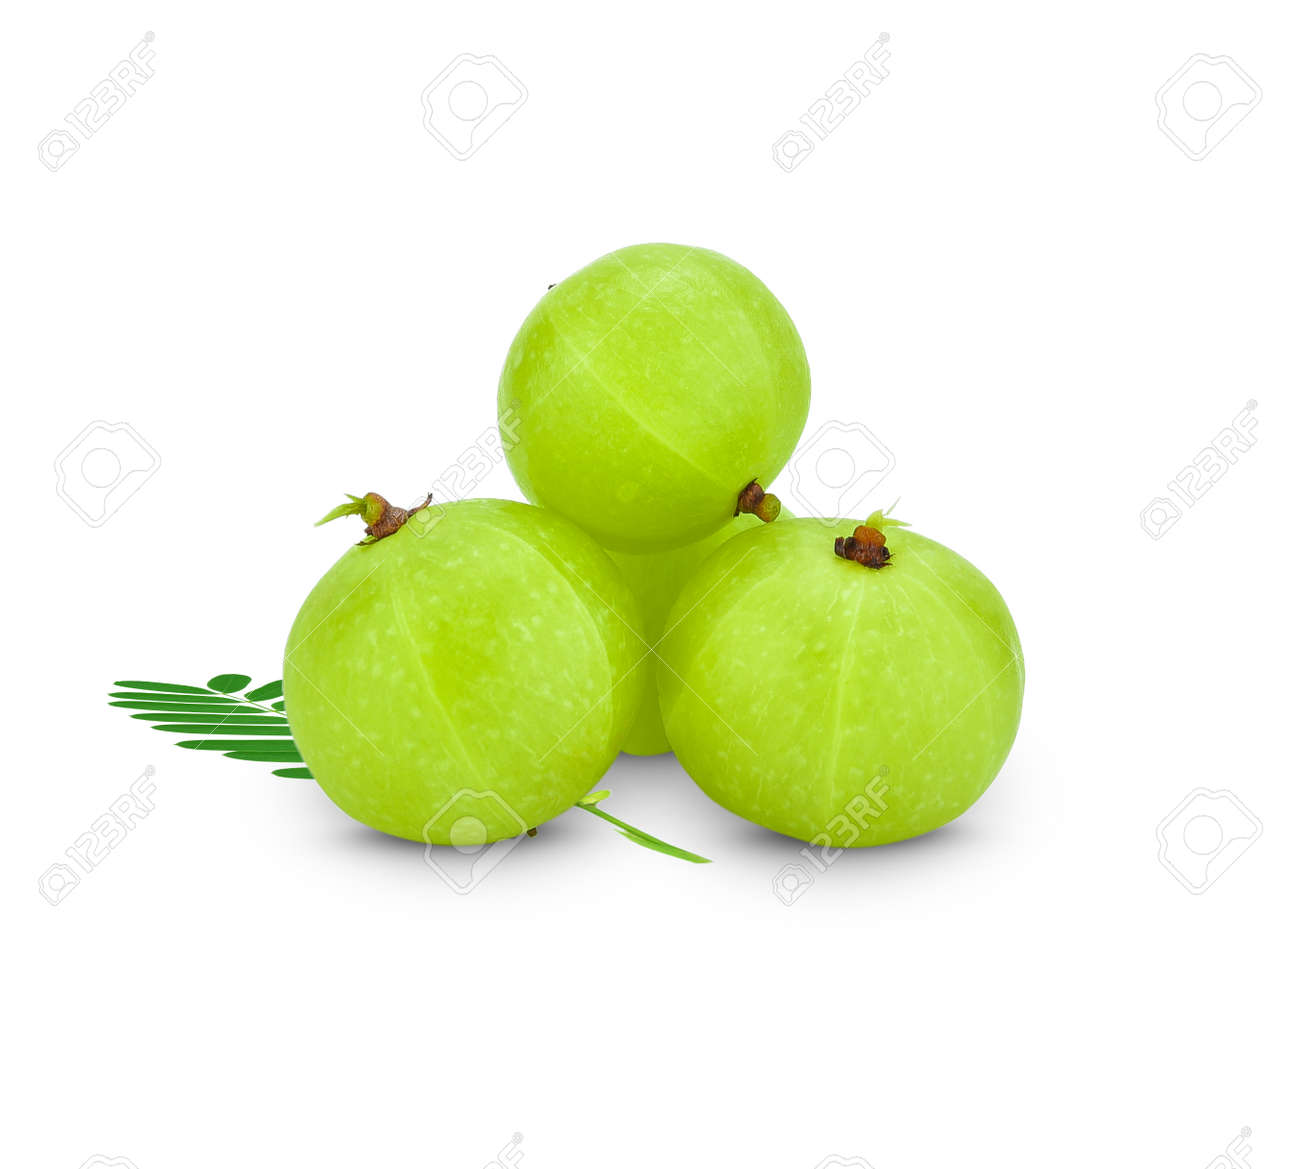 Amla green fruits ,Phyllanthus emblica isolated on white background. This has clipping path. - 144071523